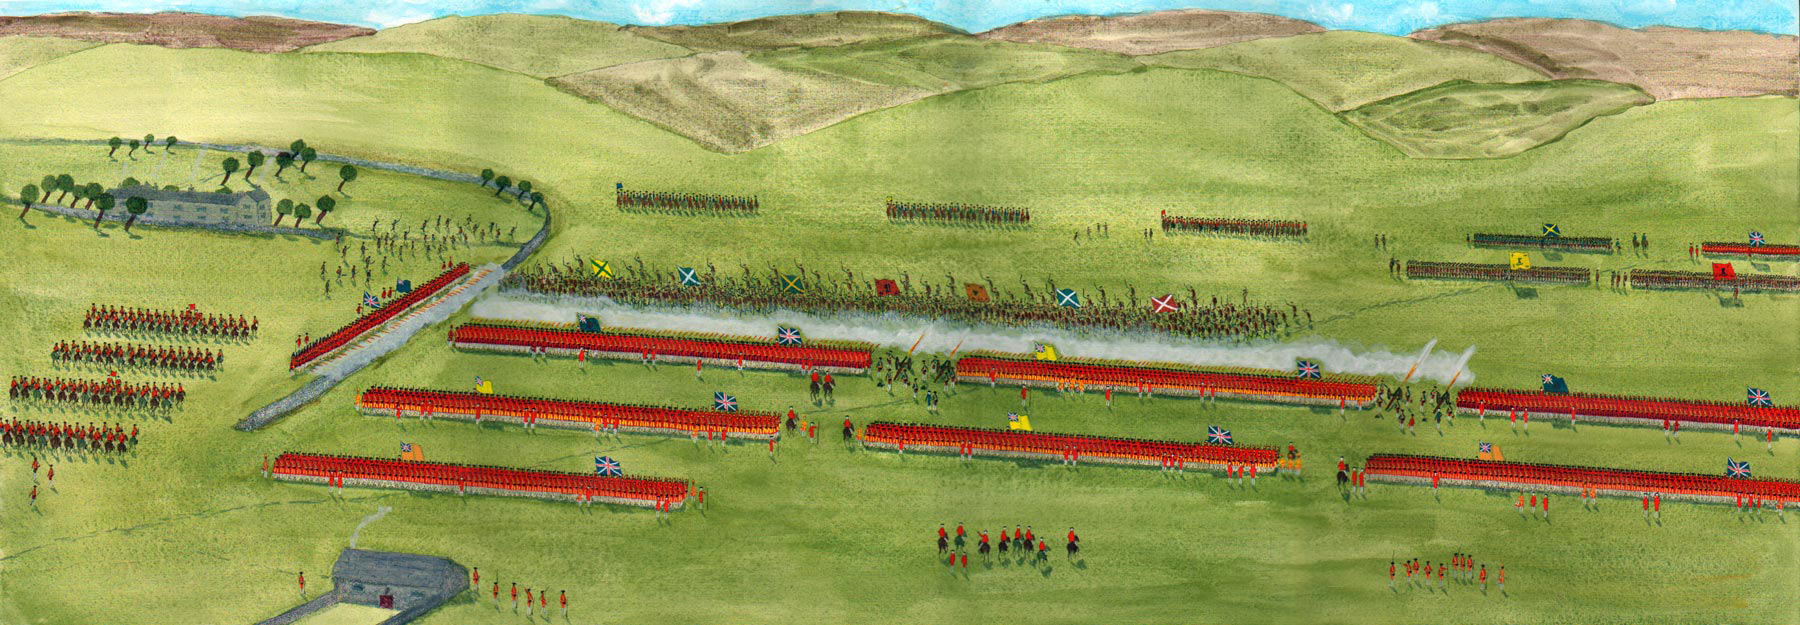 battle of culloden The battle of culloden was the final confrontation of the 1745 jacobite rising on 16 april 1746, the jacobite forces of charles edward stuart fought loyalis.